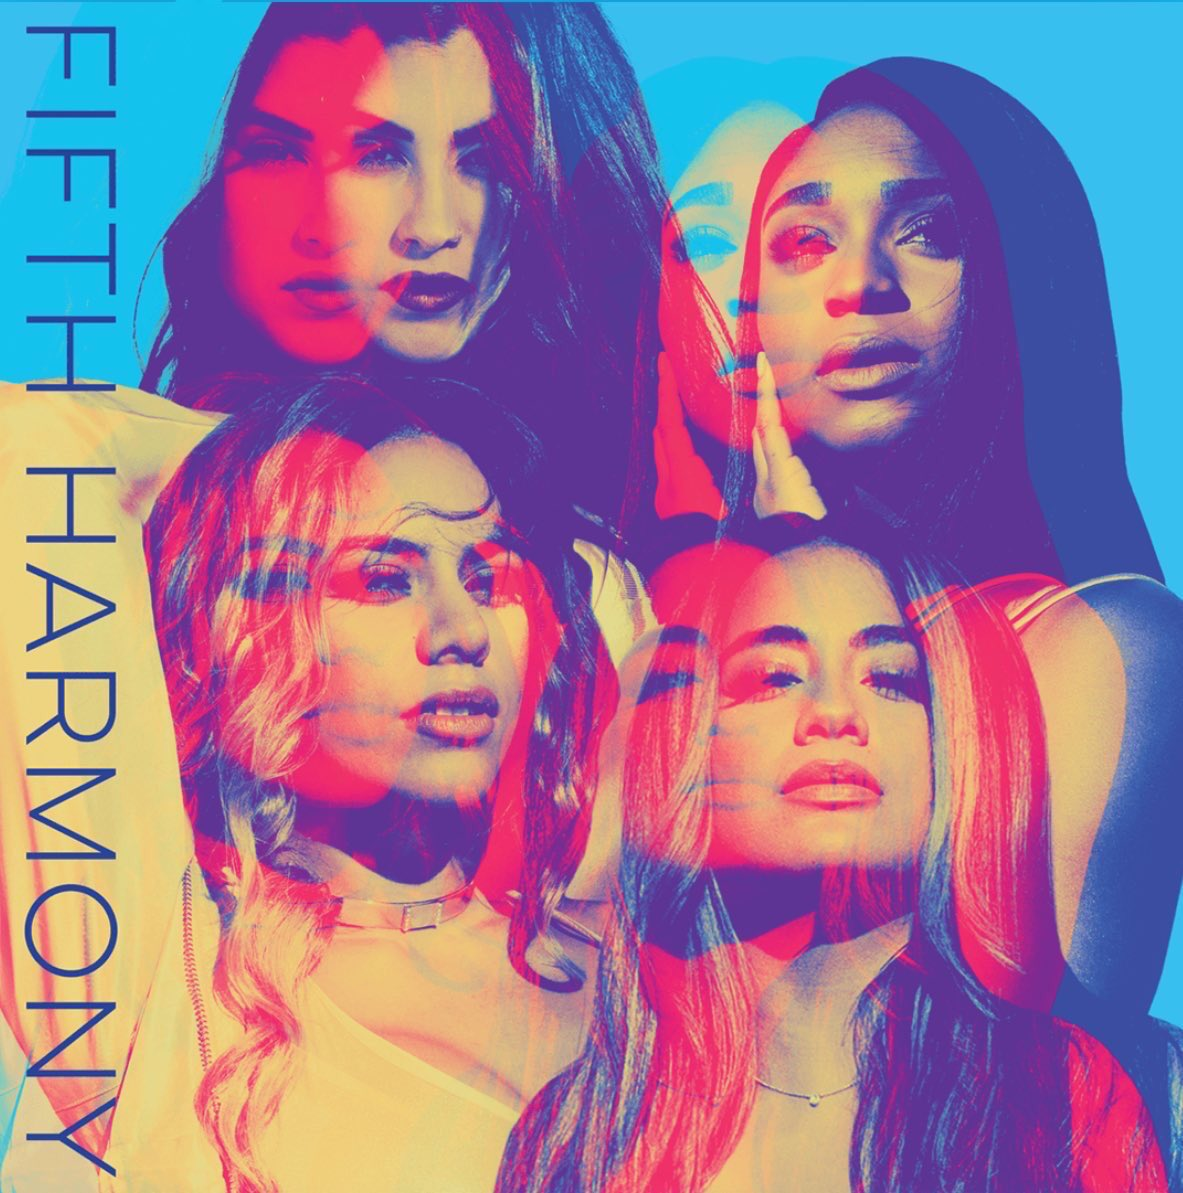 #1WeekForFifthHarmony https://t.co/5JDPX...